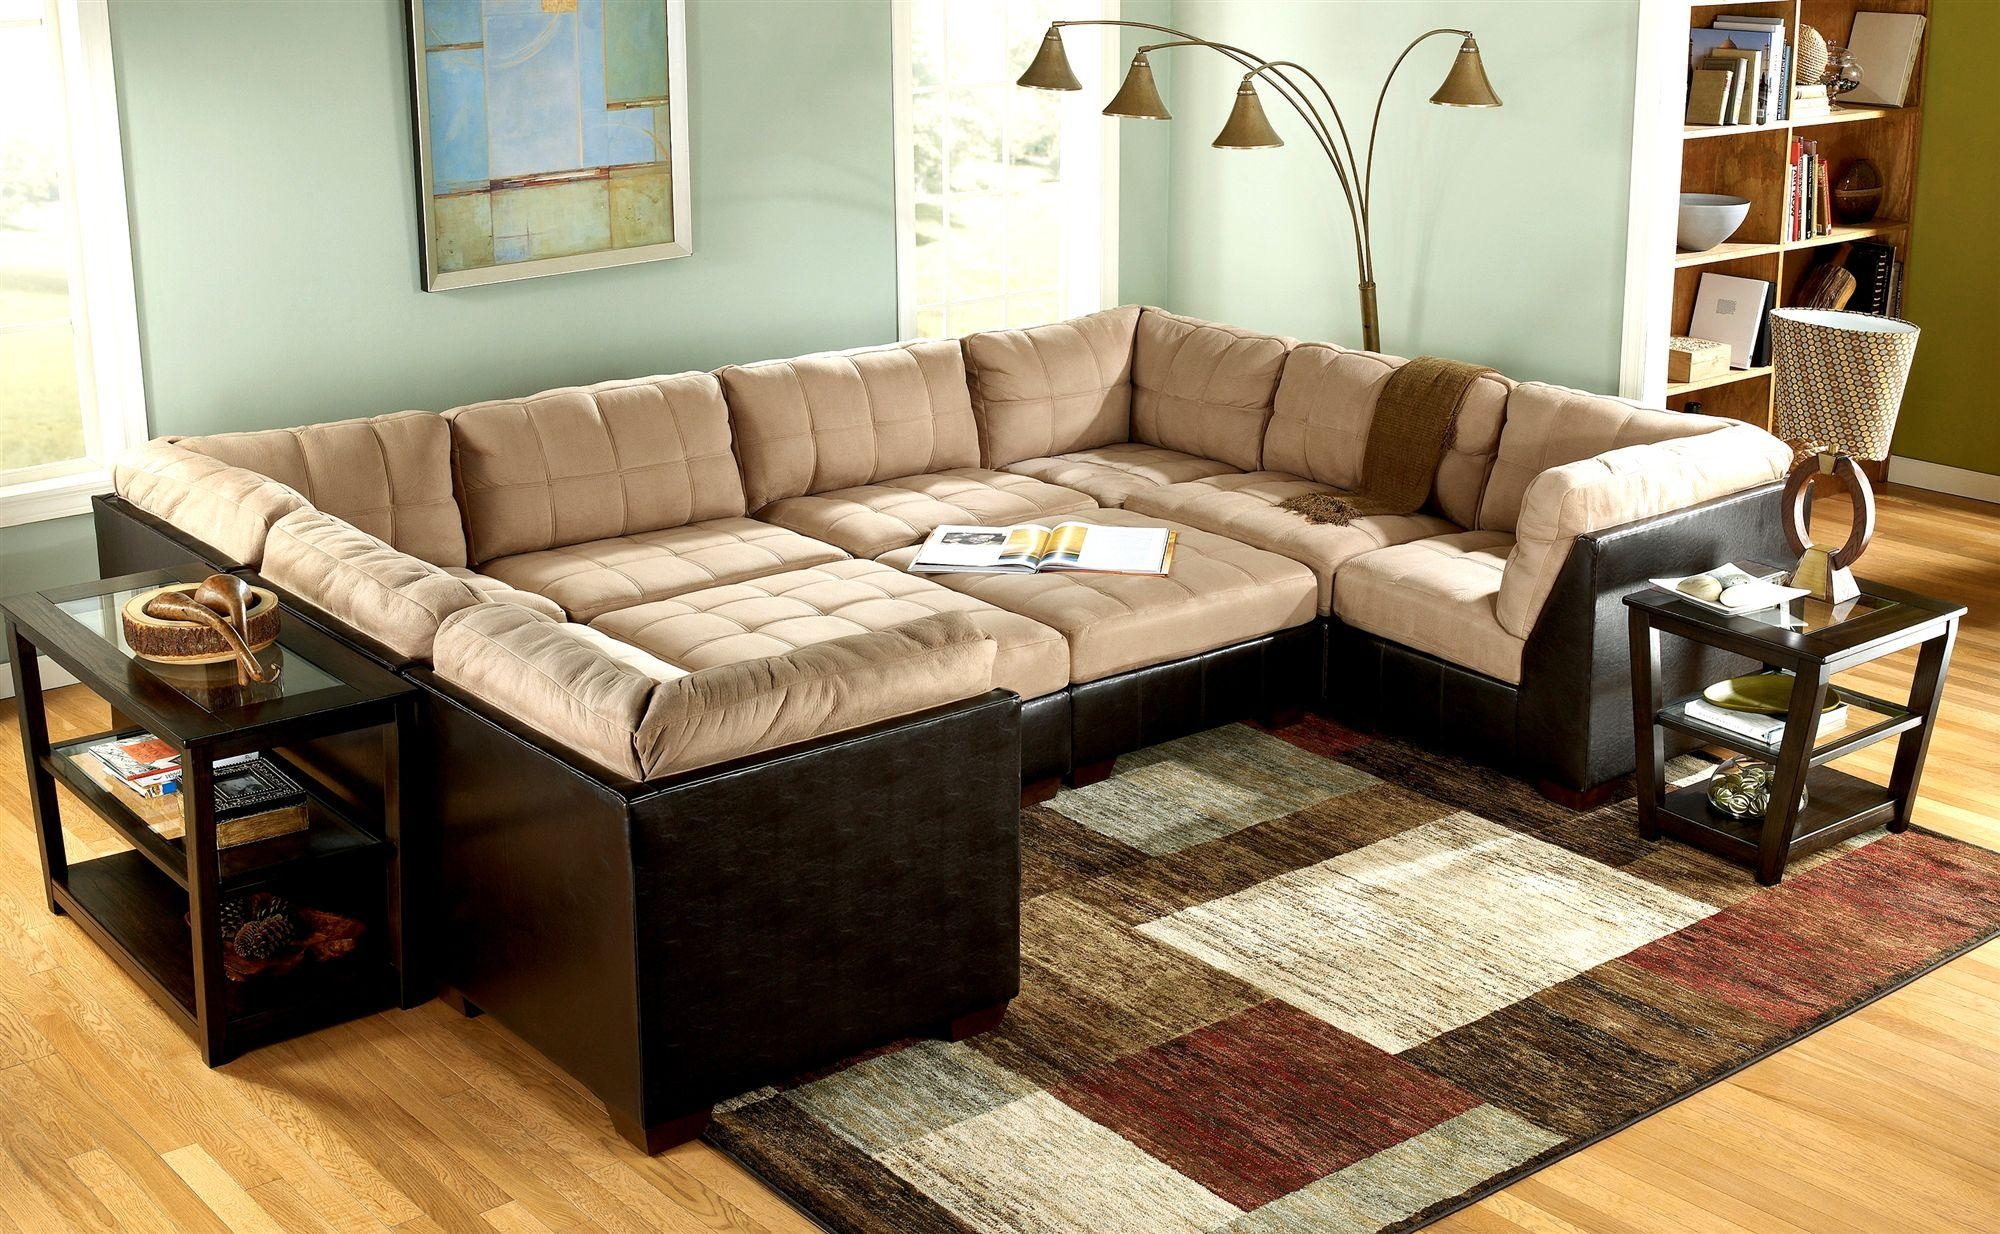 Furniture: Cool Sectional Couch Design With Rugs And Floor Lamp Within Floor Lamp For Sectional Couch (Image 7 of 15)